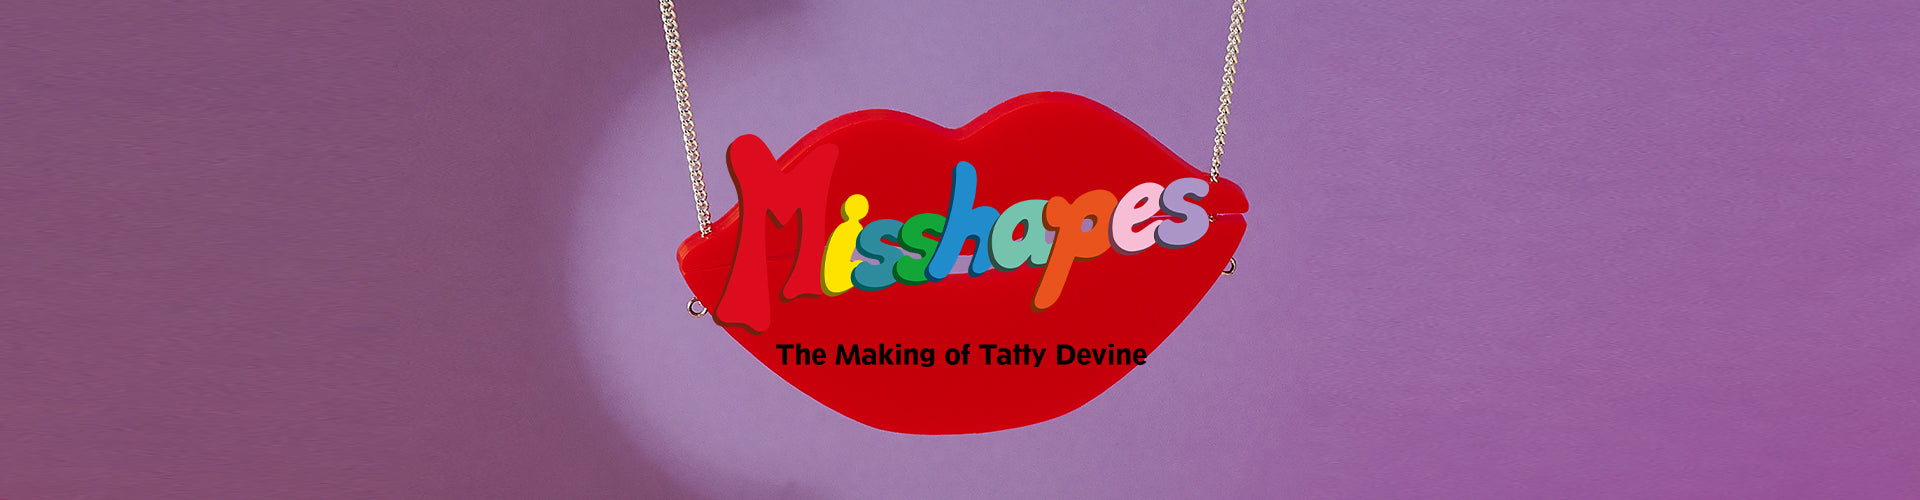 Misshapes: The Making of Tatty Devine